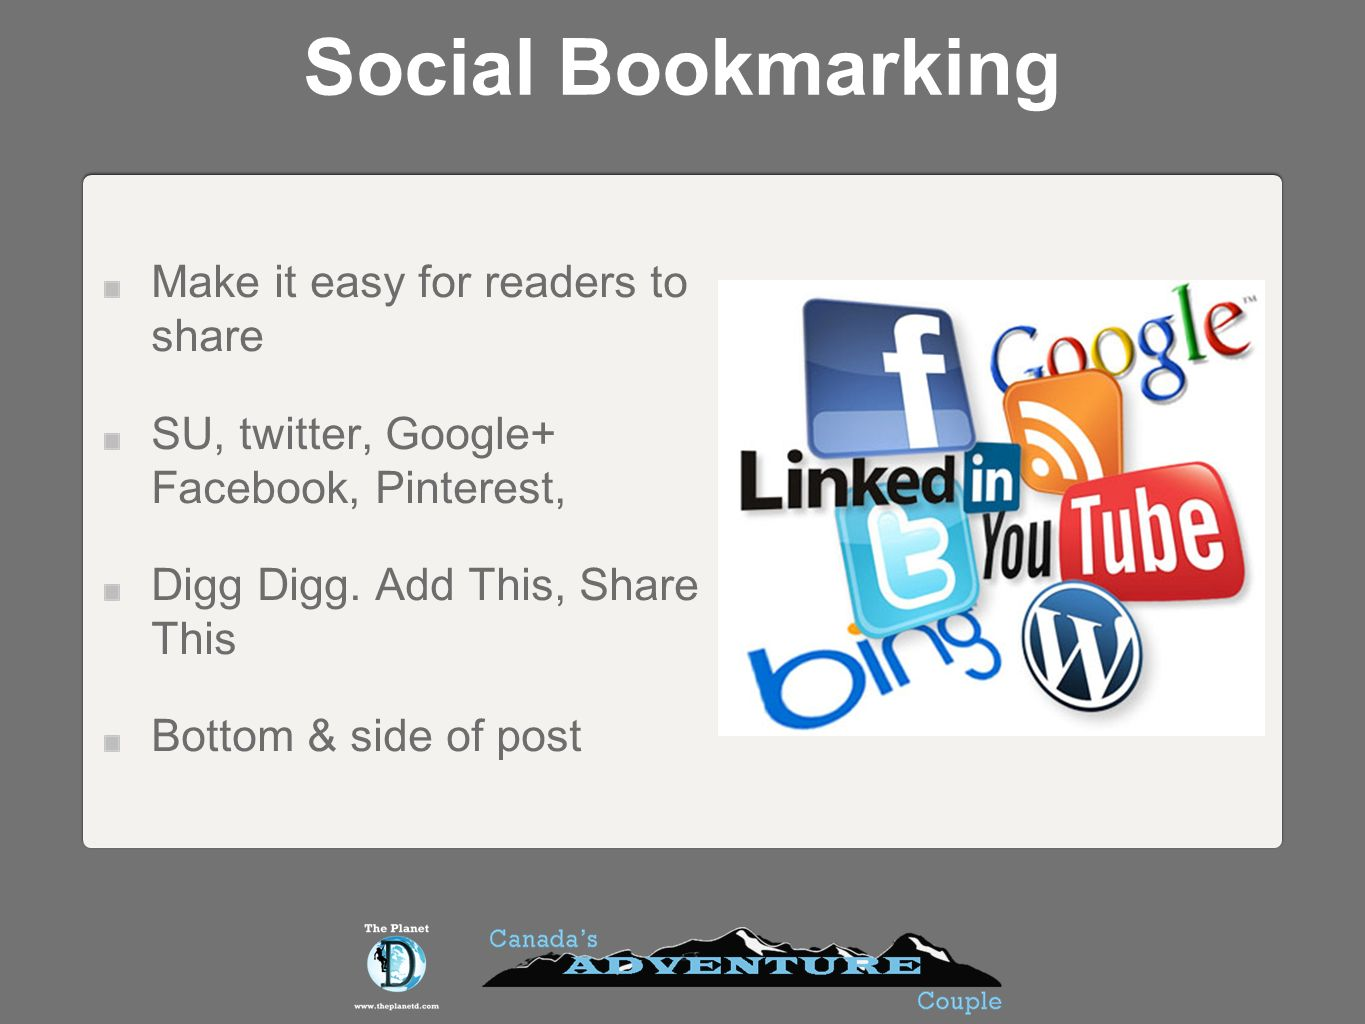 Social Bookmarking Make it easy for readers to share SU, twitter, Google+ Facebook, Pinterest, Digg Digg. Add This, Share This Bottom & side of post